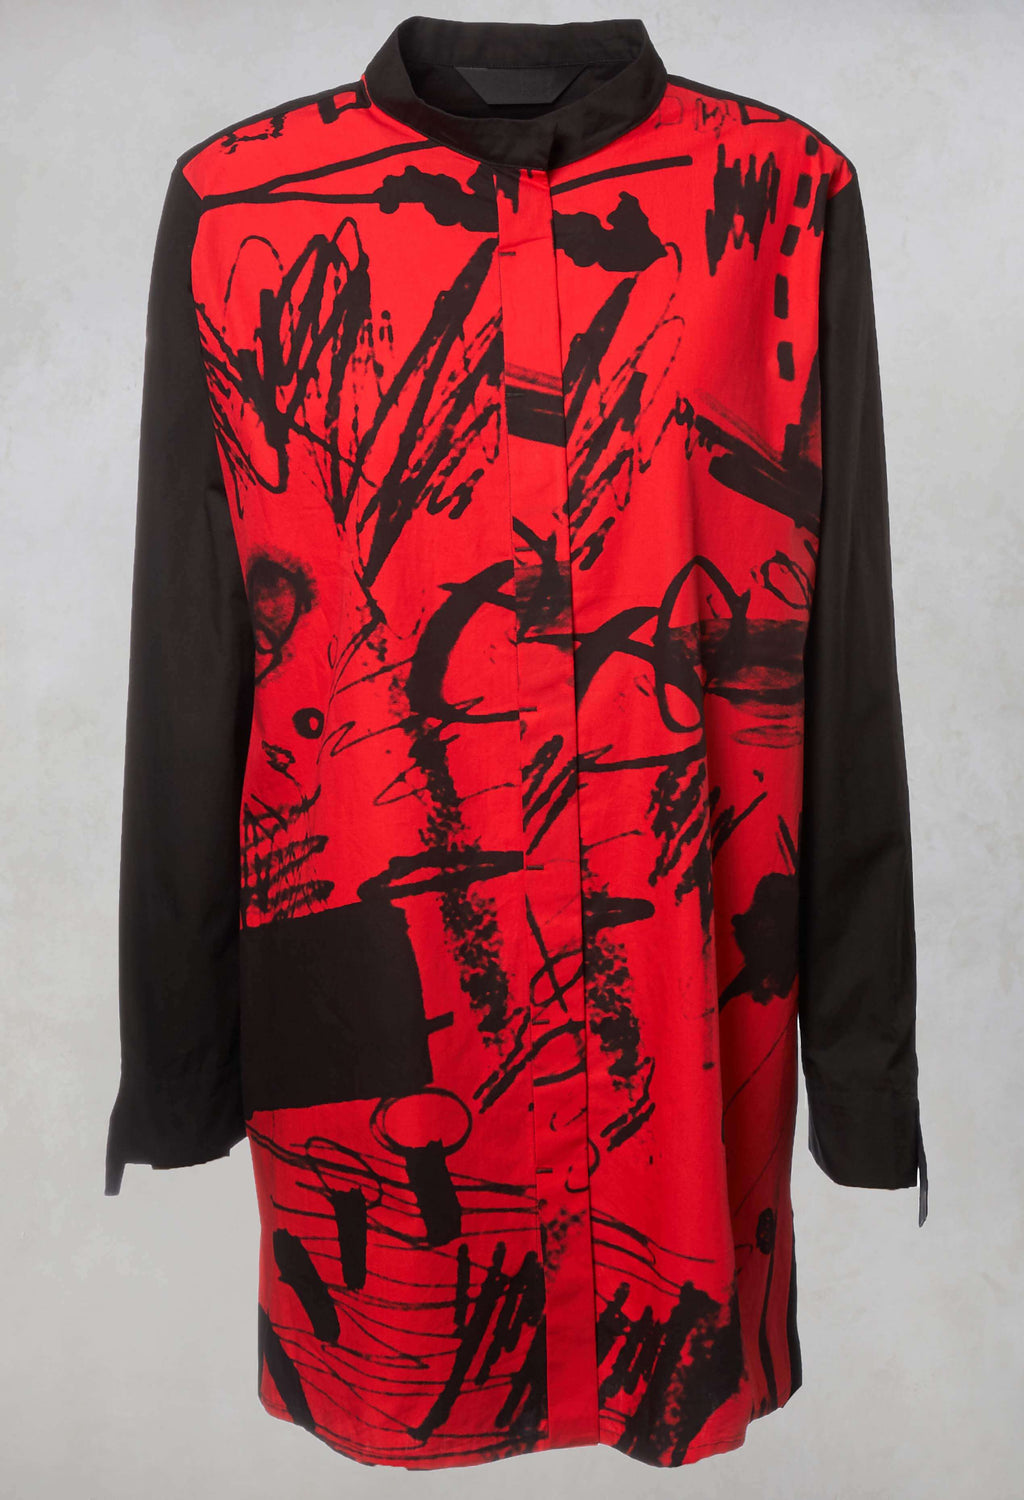 Printed Shirt in Black / Red